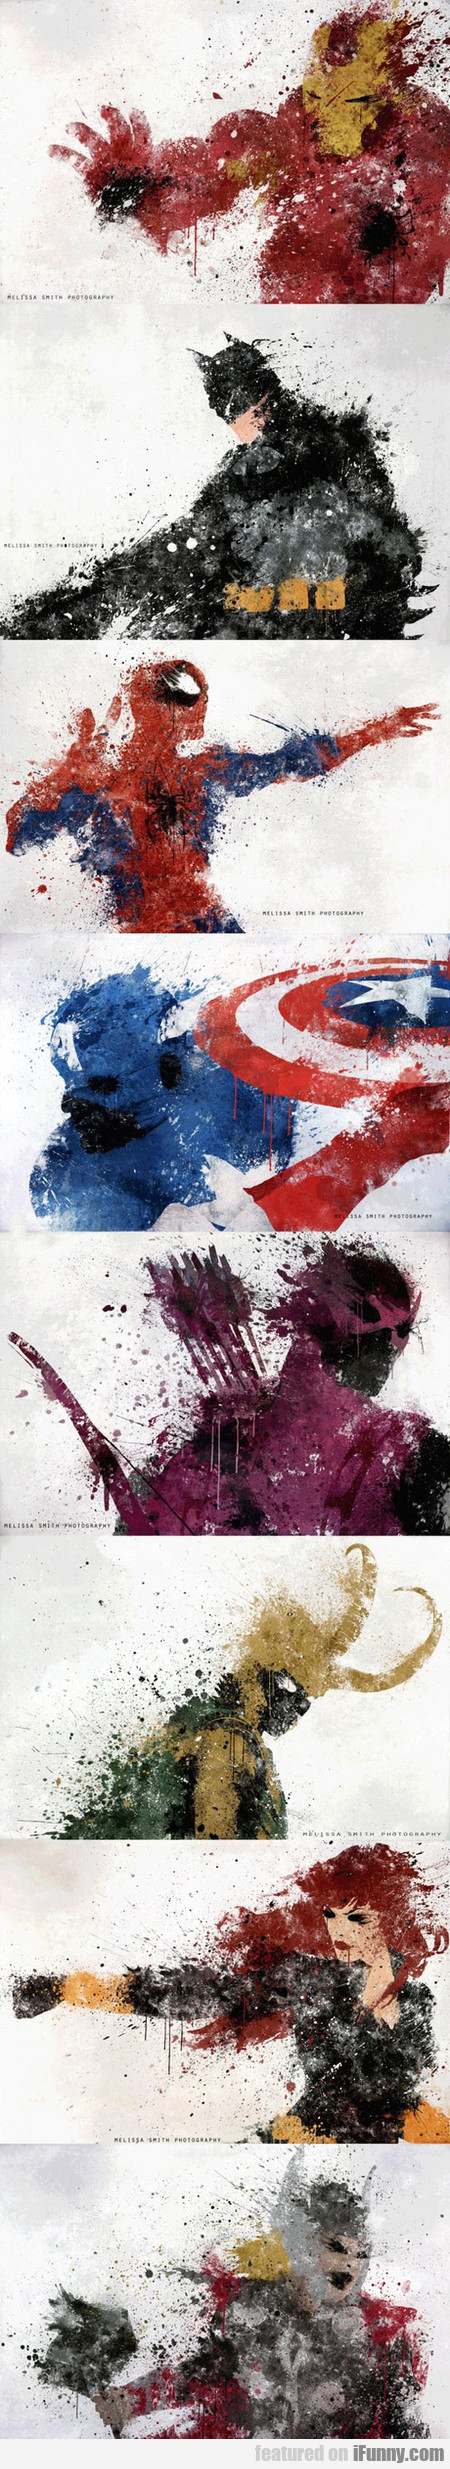 Awesome Splatters Of Superhero Characters